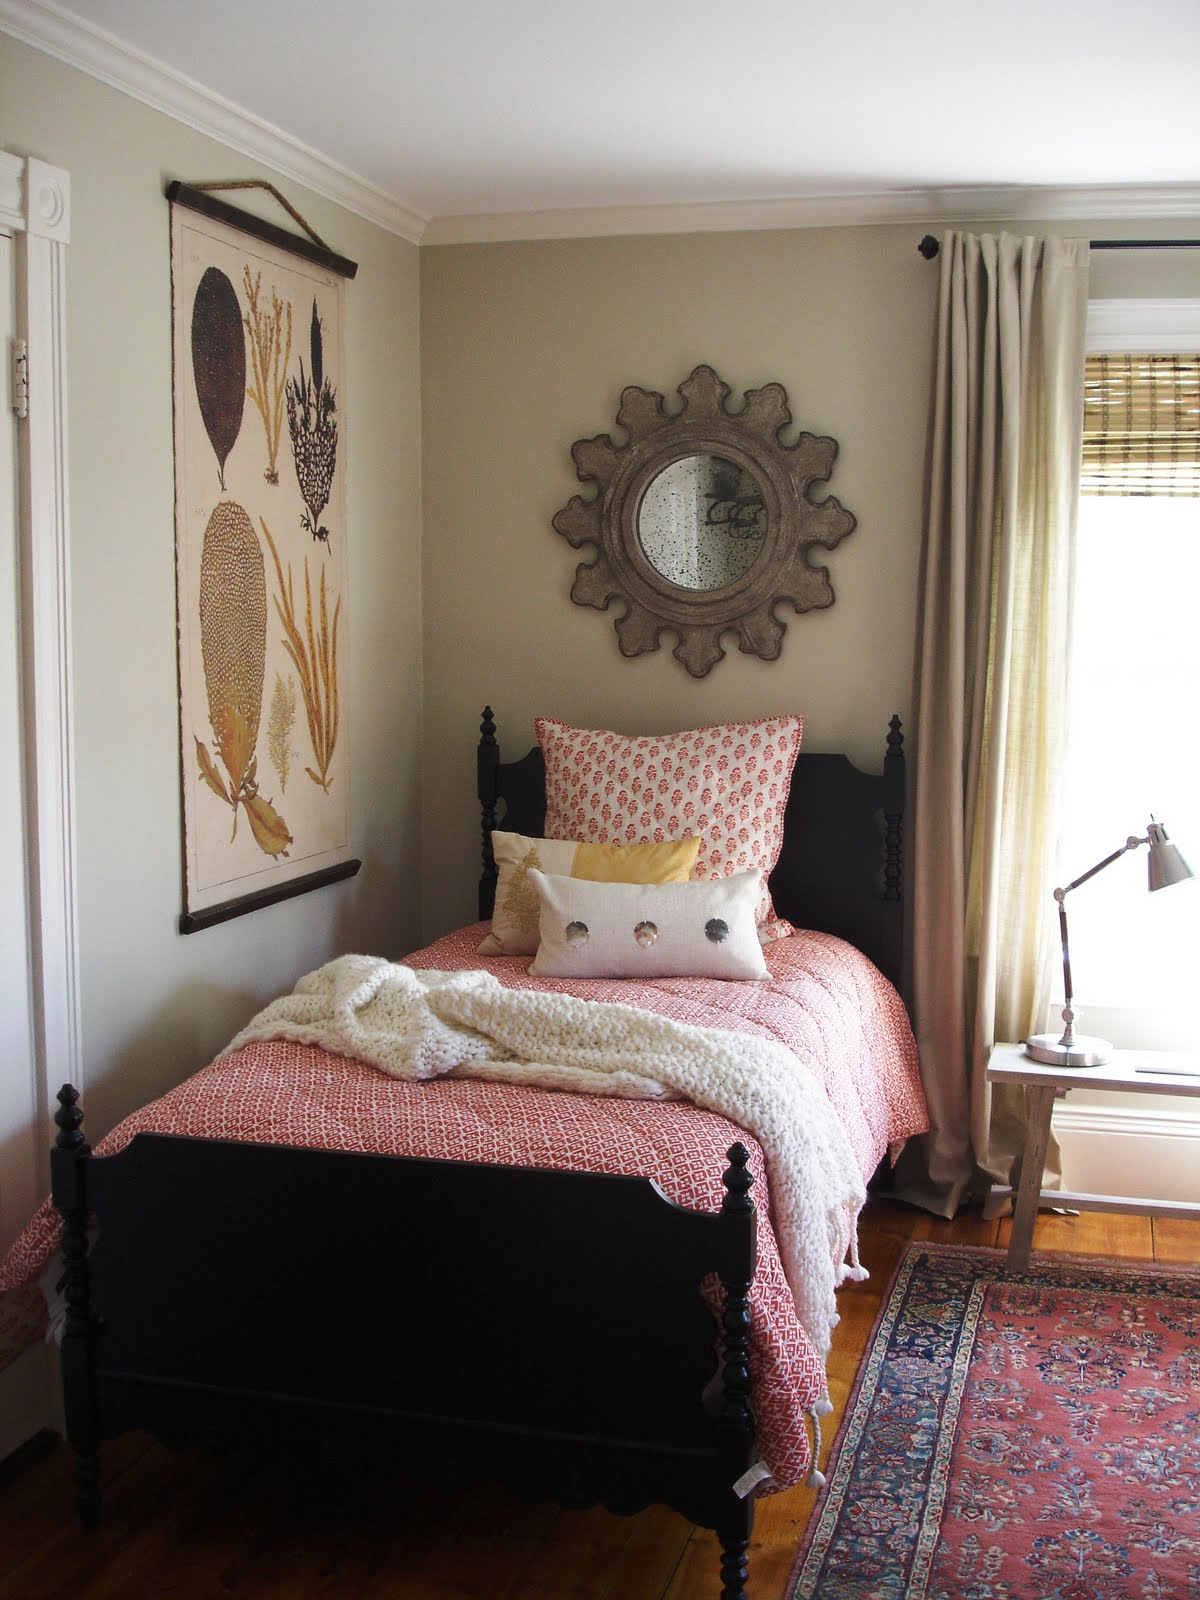 Admirable Small Home Office Guest Room Ideas I Downgila Com Largest Home Design Picture Inspirations Pitcheantrous